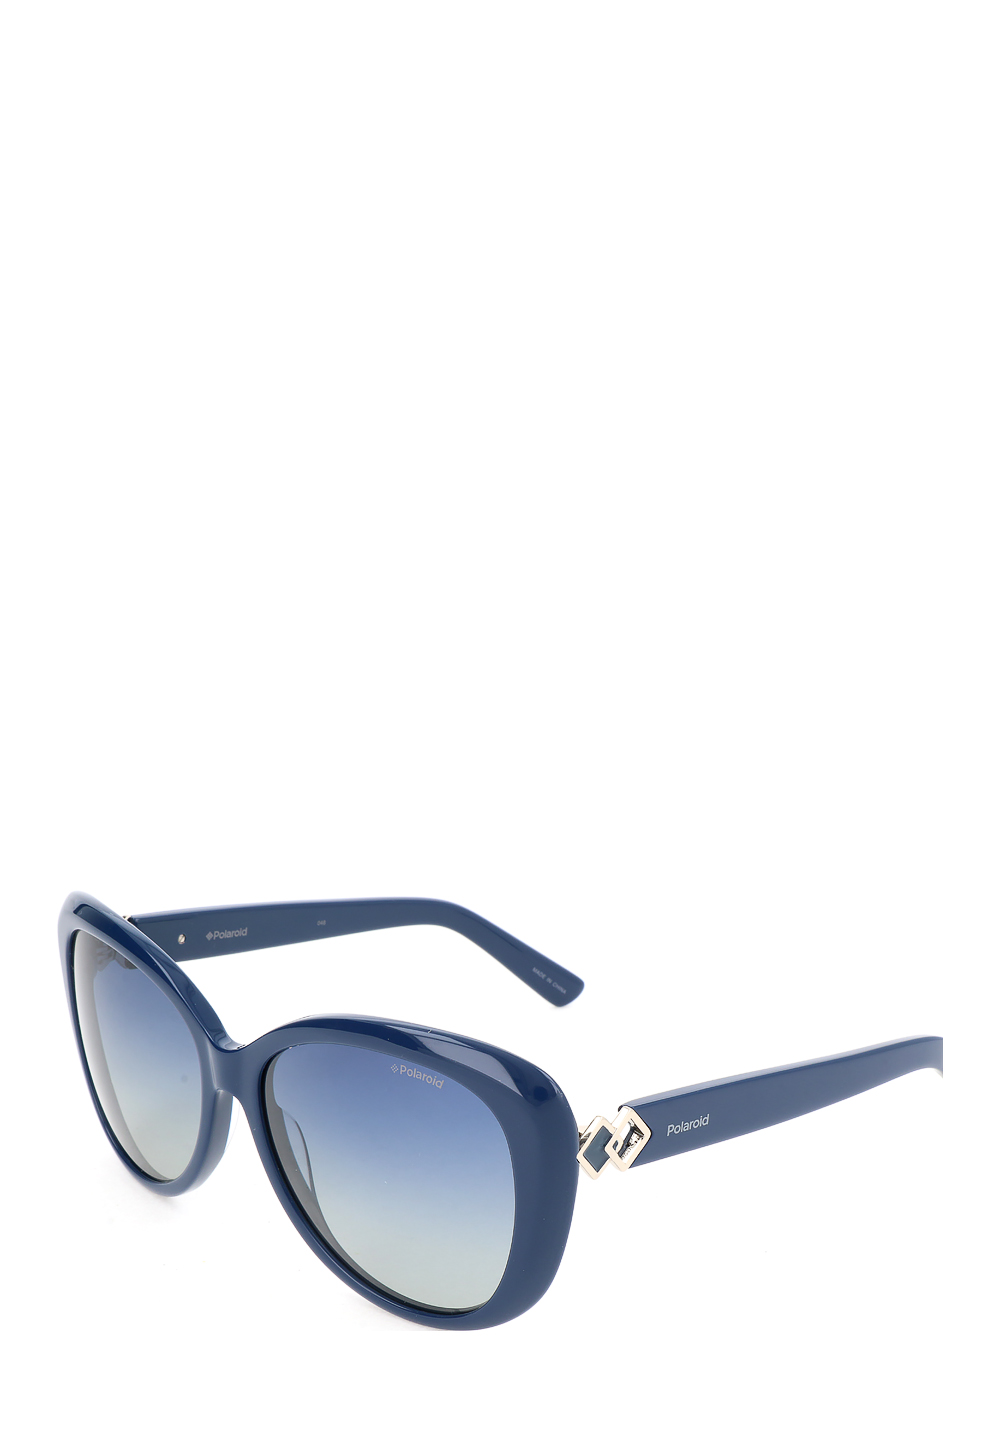 Sonnenbrille Pld4050/U/S, polarized, Uv400, blue blau